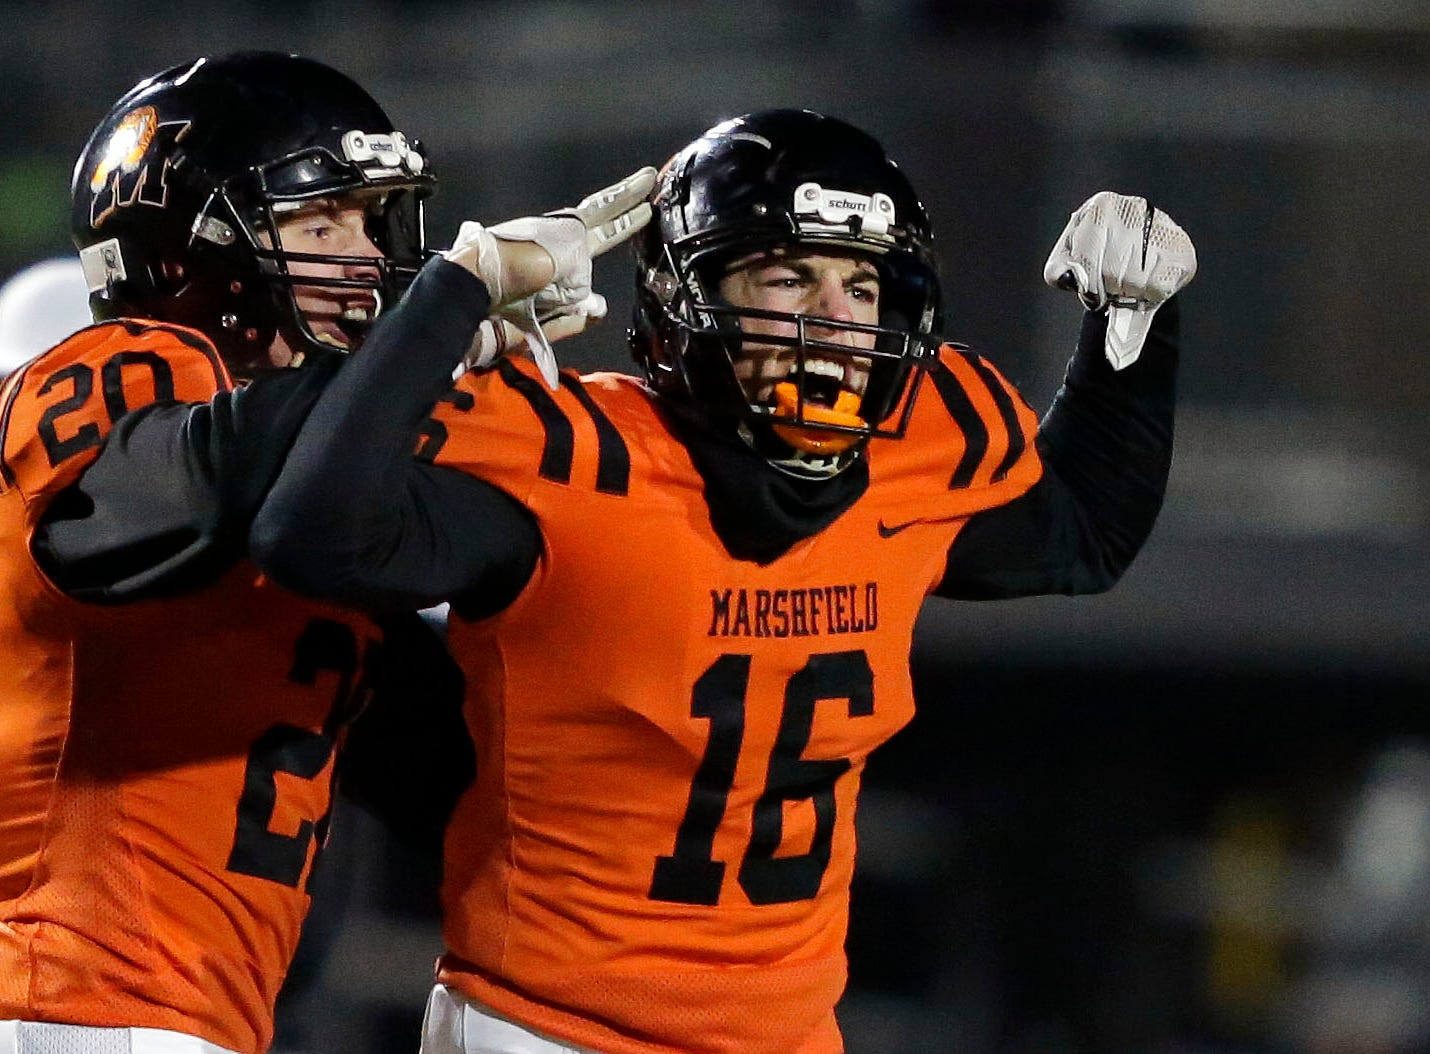 Bently Schwanebeck-Ostermann of Marshfield celebrates a stop against Homestead that resulted in a turnover on downs during a WIAA Division 2 state semifinal football game Friday, November 9, 2018, at Calder Stadium in Menasha, Wis.Ron Page/USA TODAY NETWORK-Wisconsin